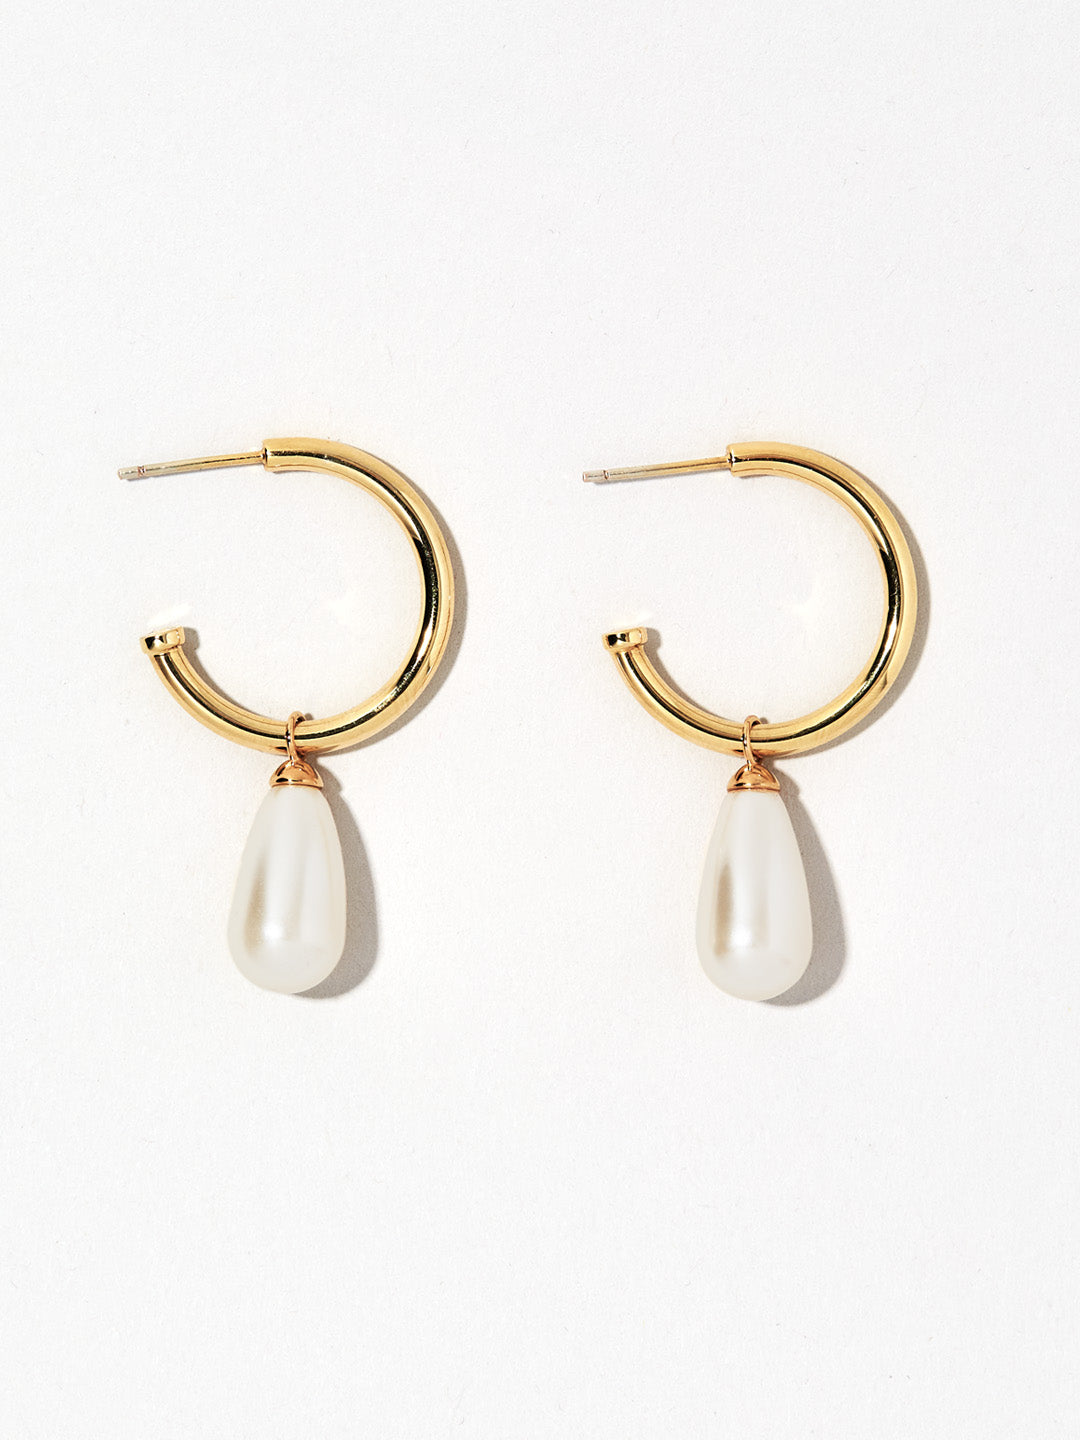 Ana Luisa Earrings Hoop Earrings Pearl Hoop Earrings M.I.M. Mel Gold